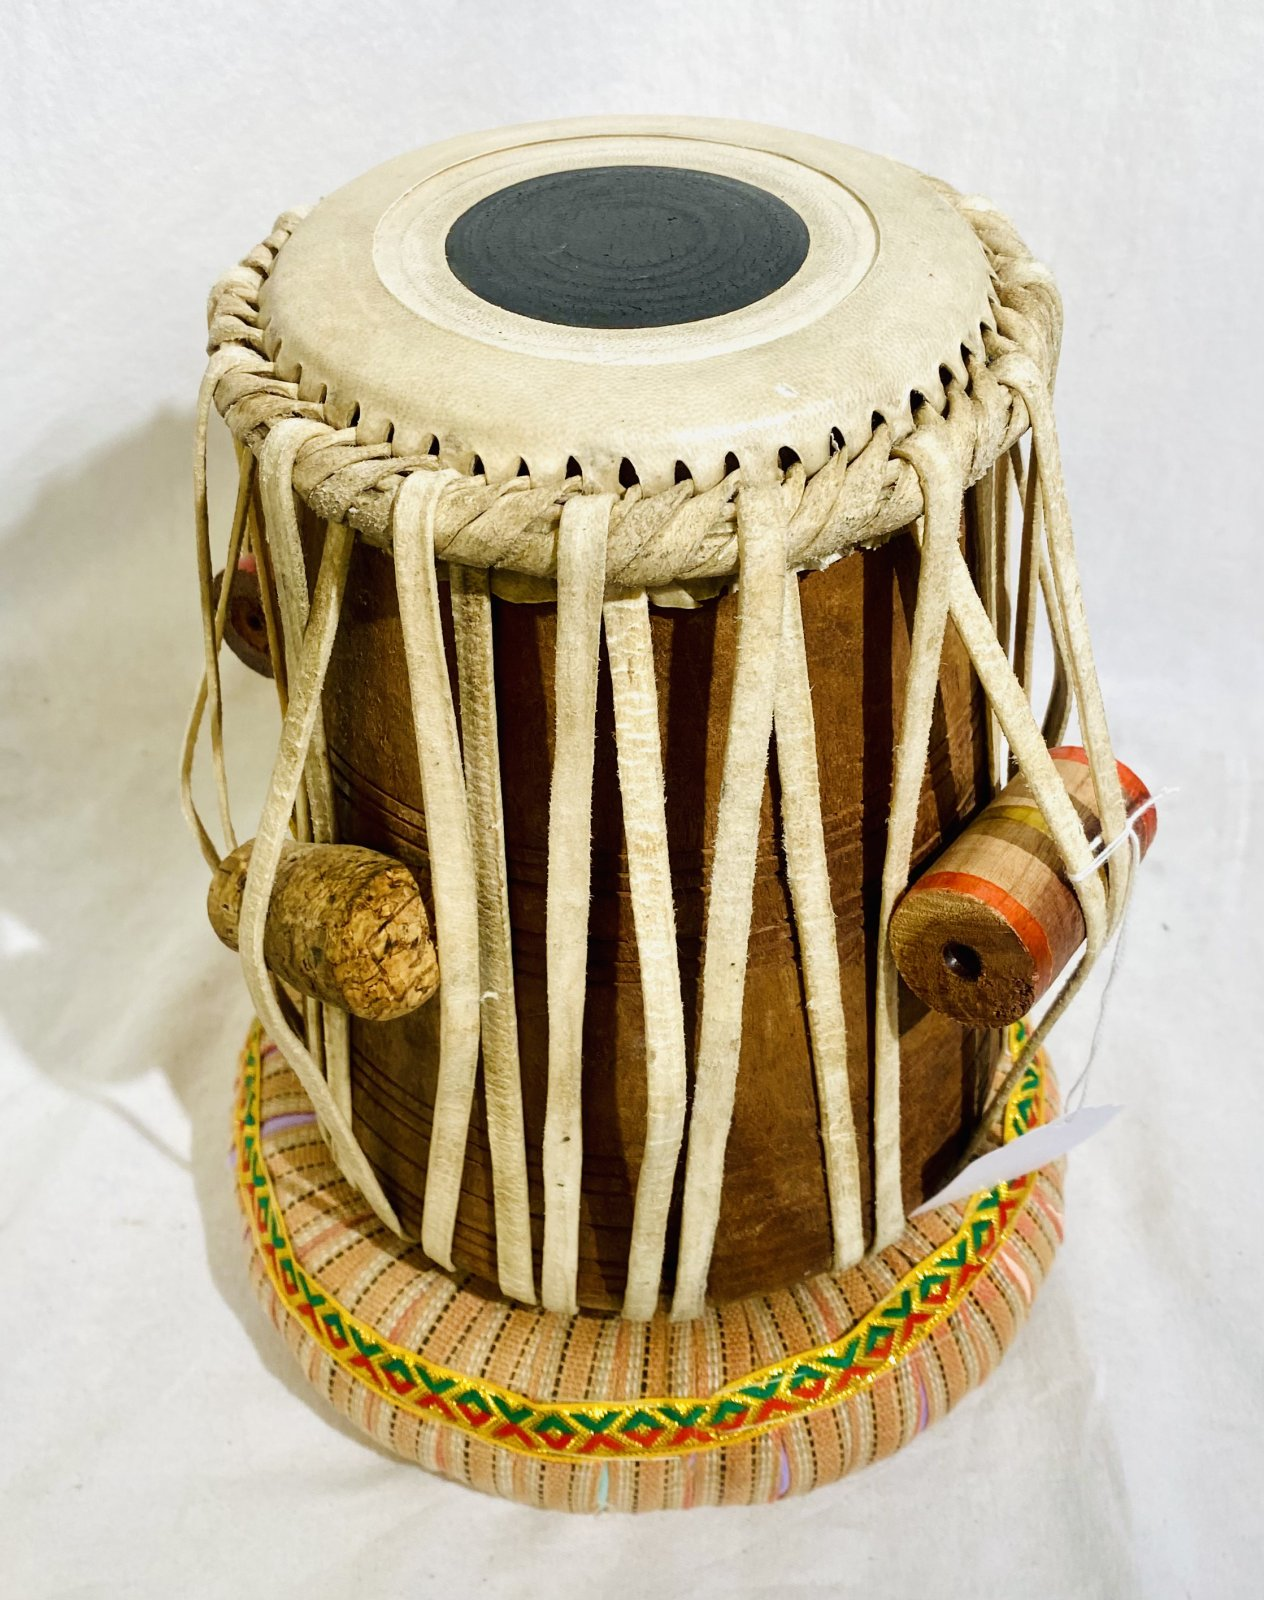 INDIAN 5 1/2 TABLA HAND DRUM WITH BASE